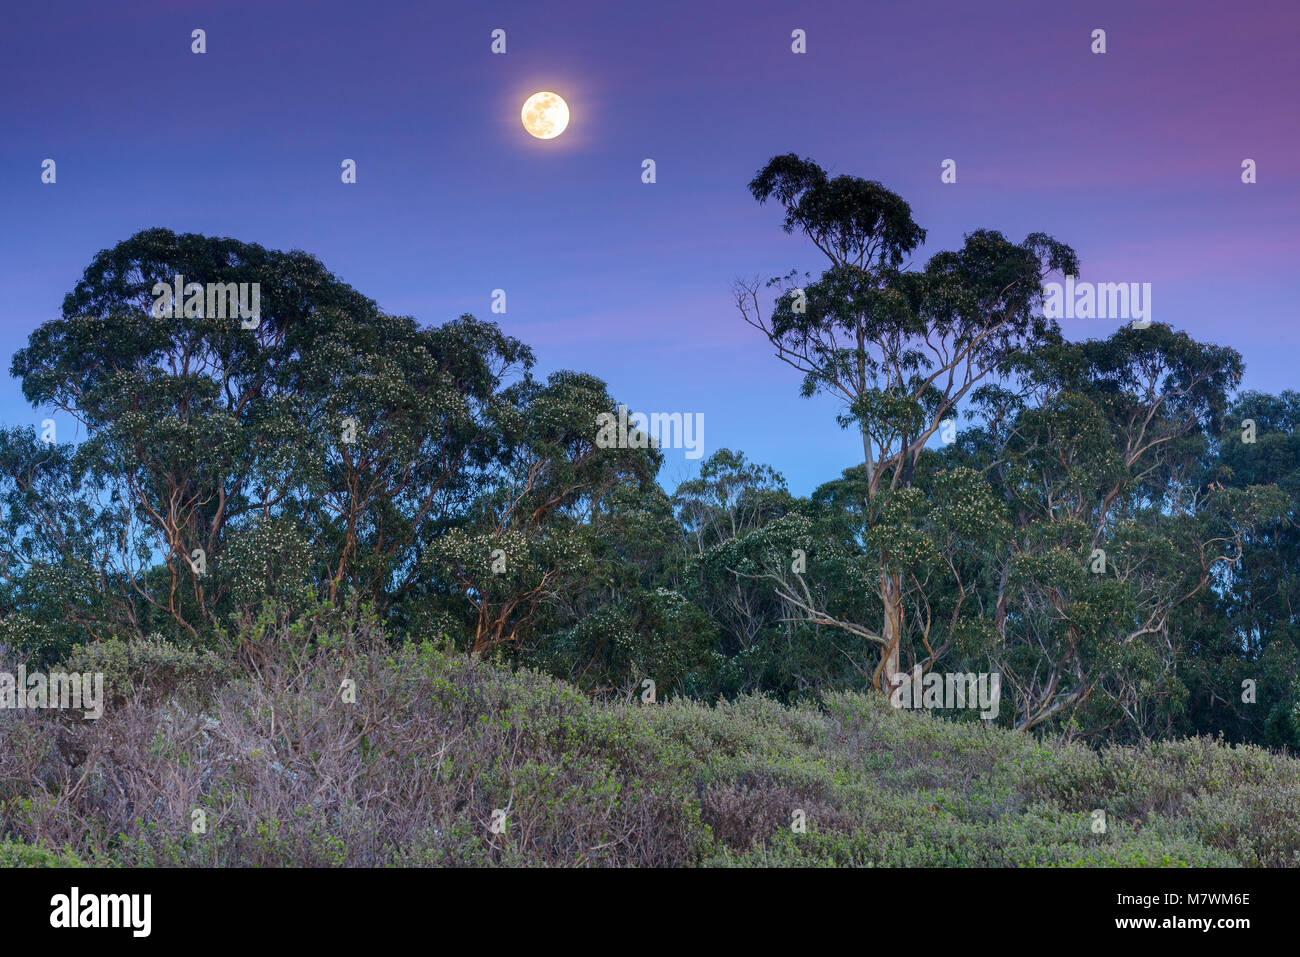 Moonrise, Eucalyptus, Dias Ridge, Mount Tamalpais State Park, Marin County, California - Stock Image